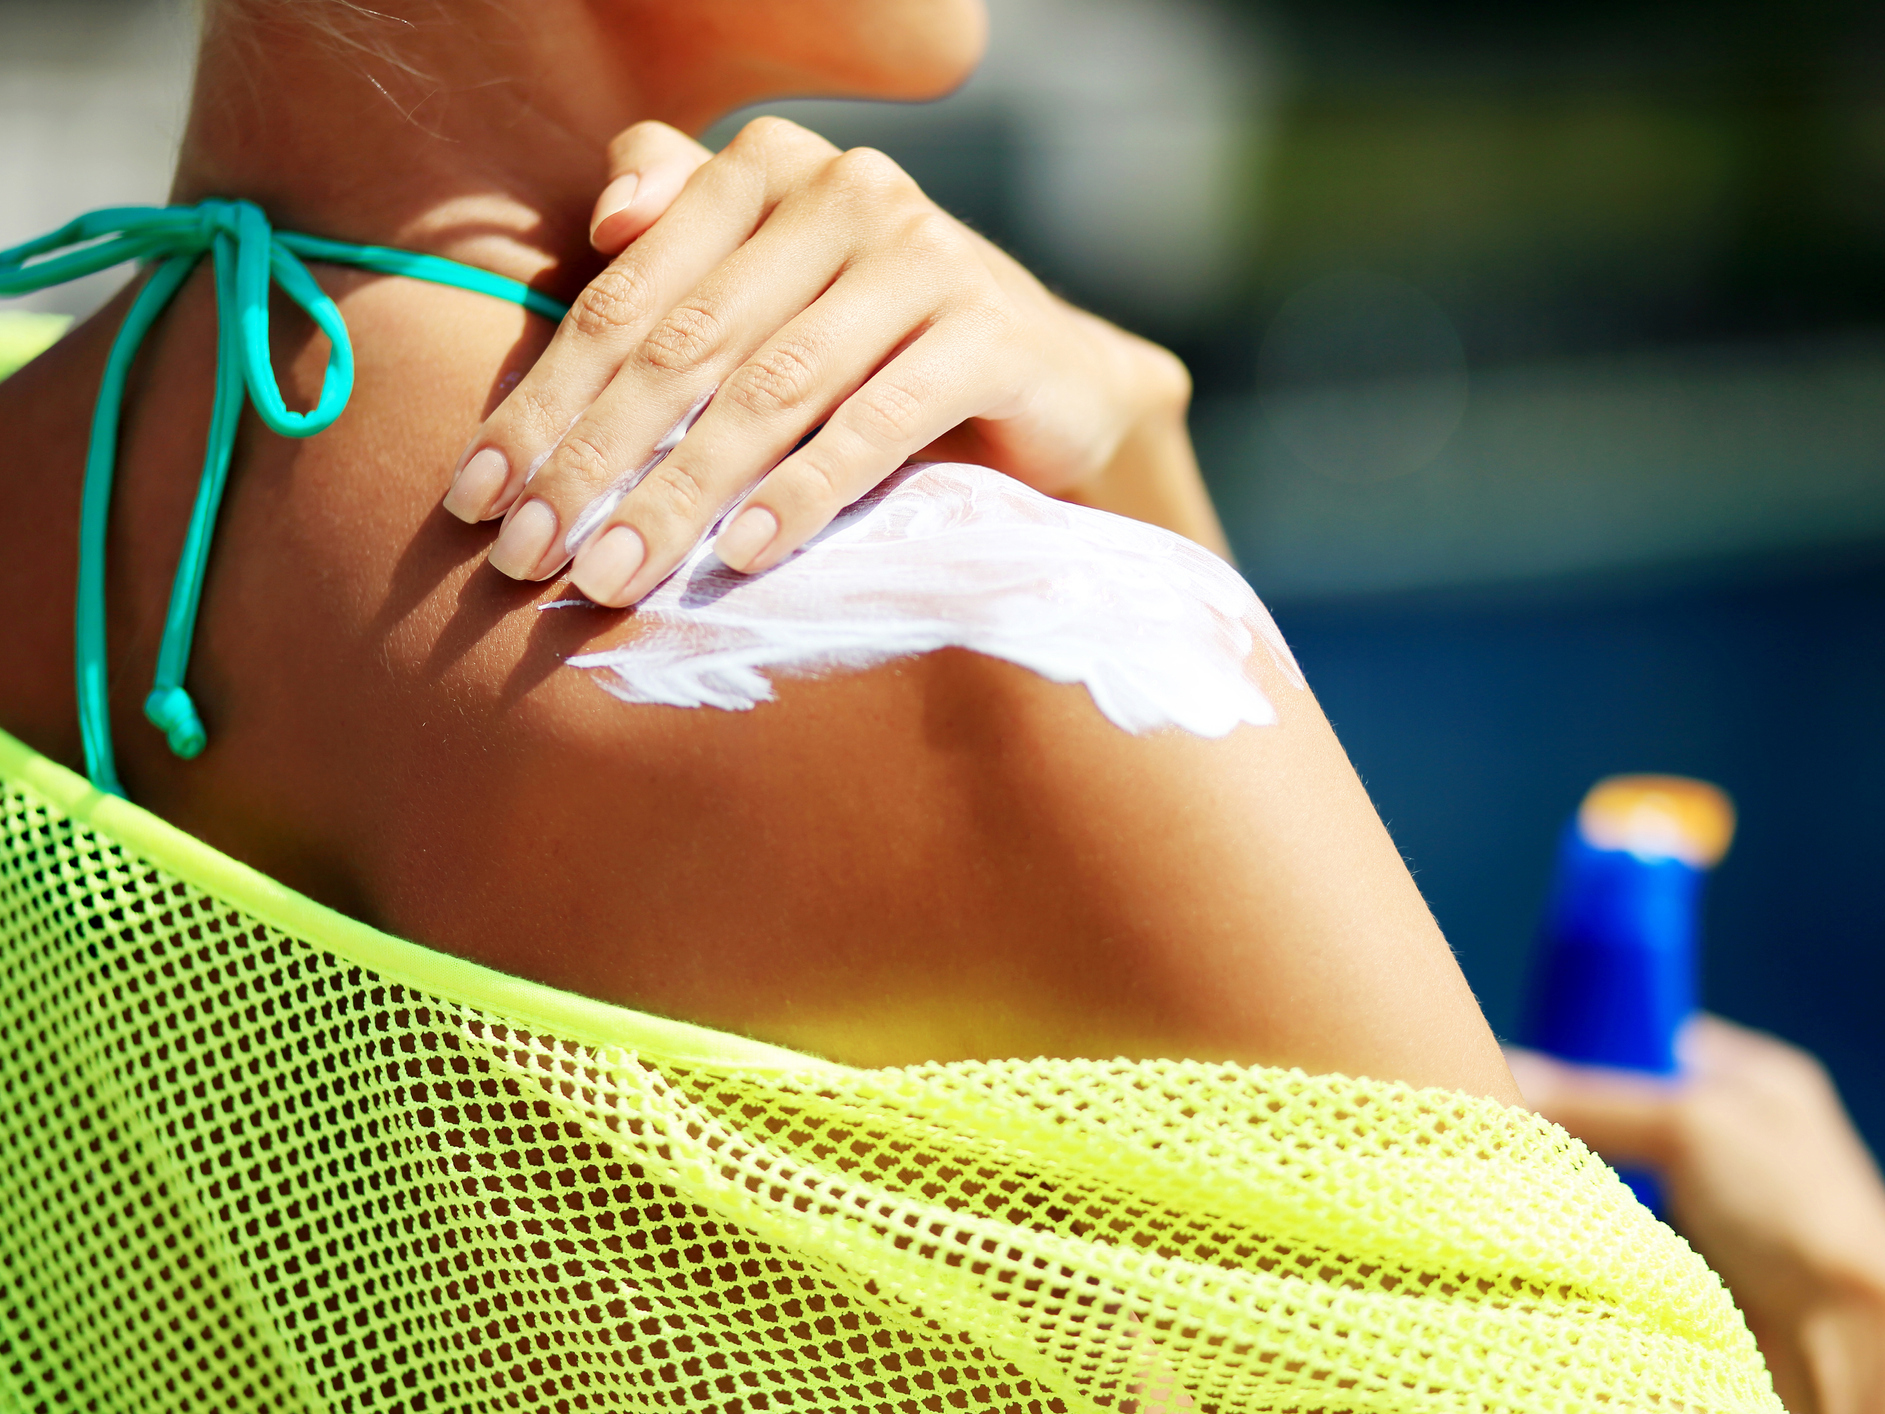 3 important factors for choosing sun protection against photoaging and cancer